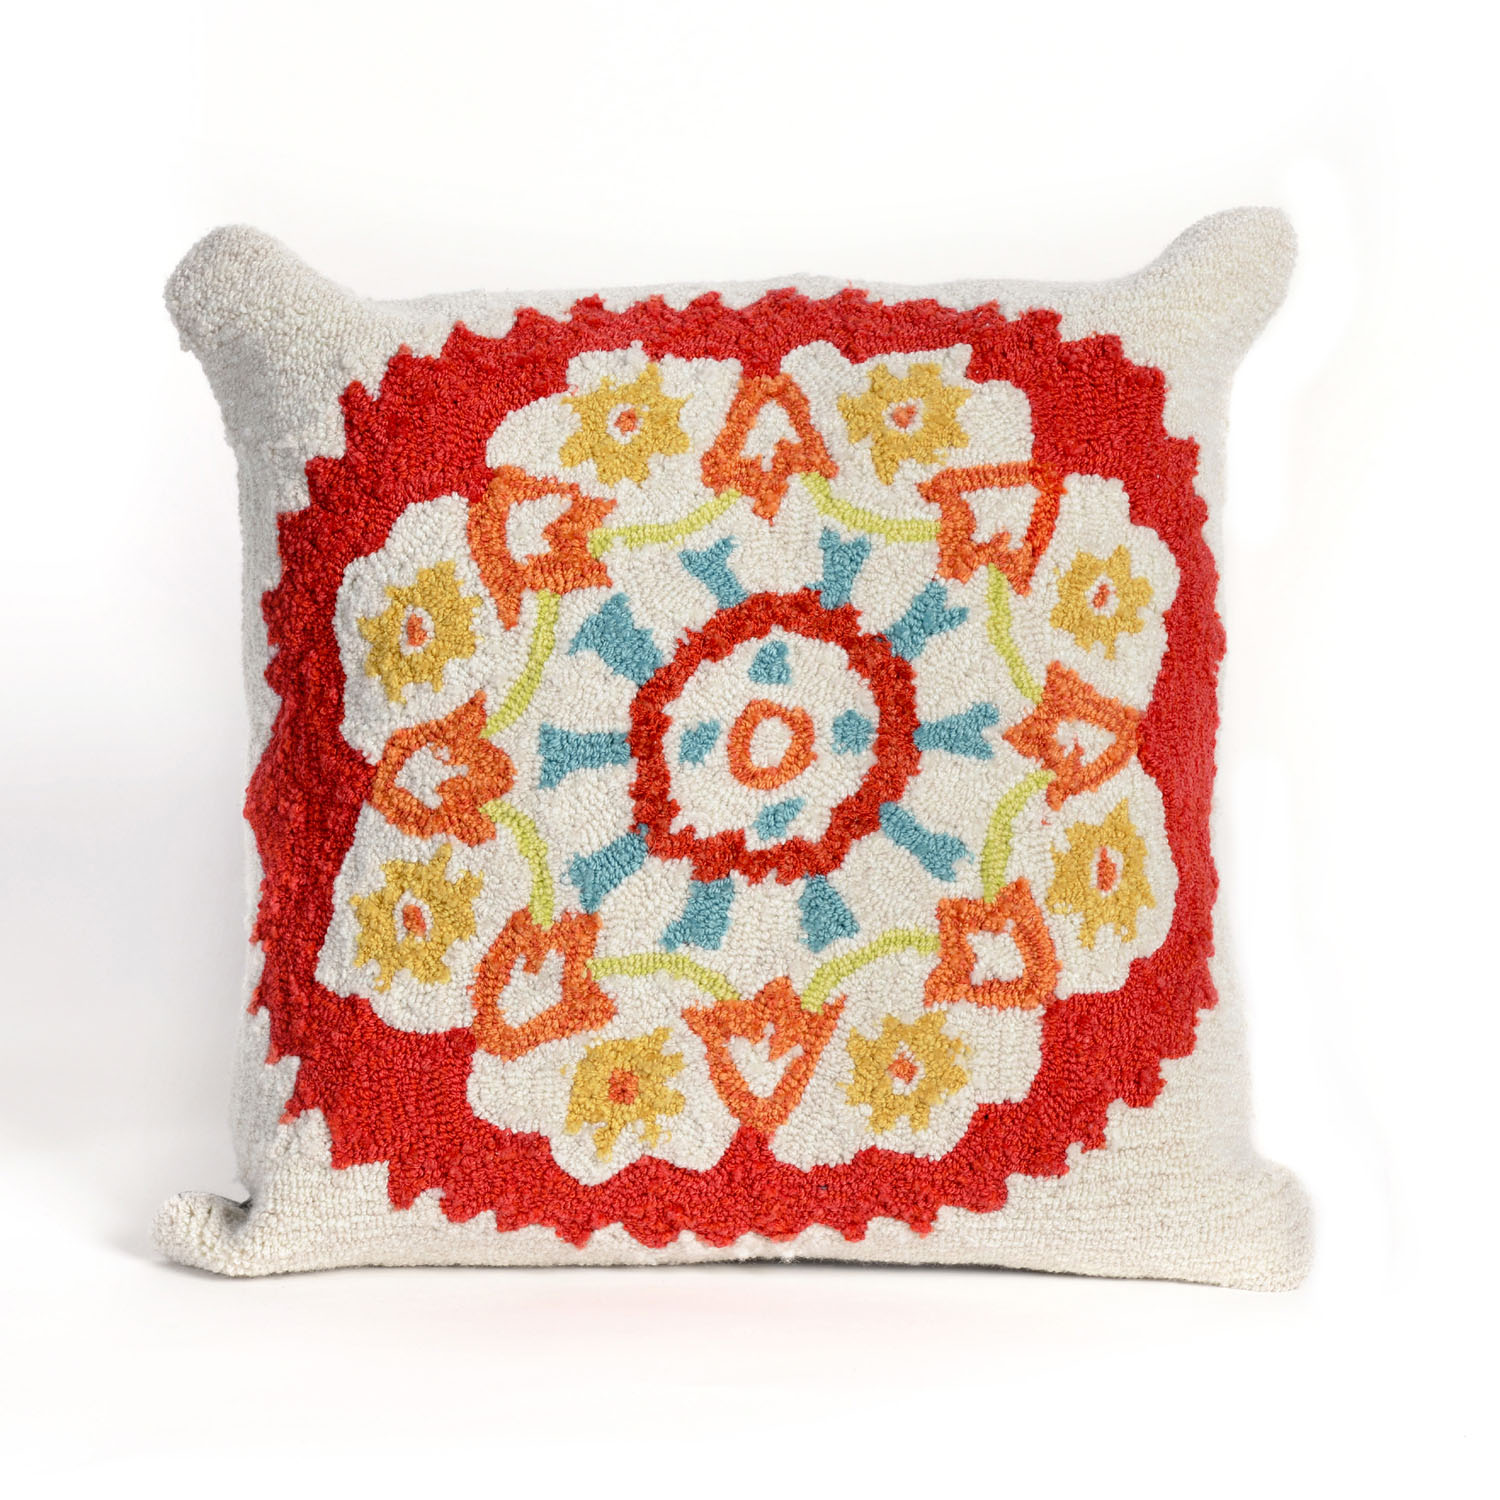 Frontporch Suzanie Pillow-Color:Red